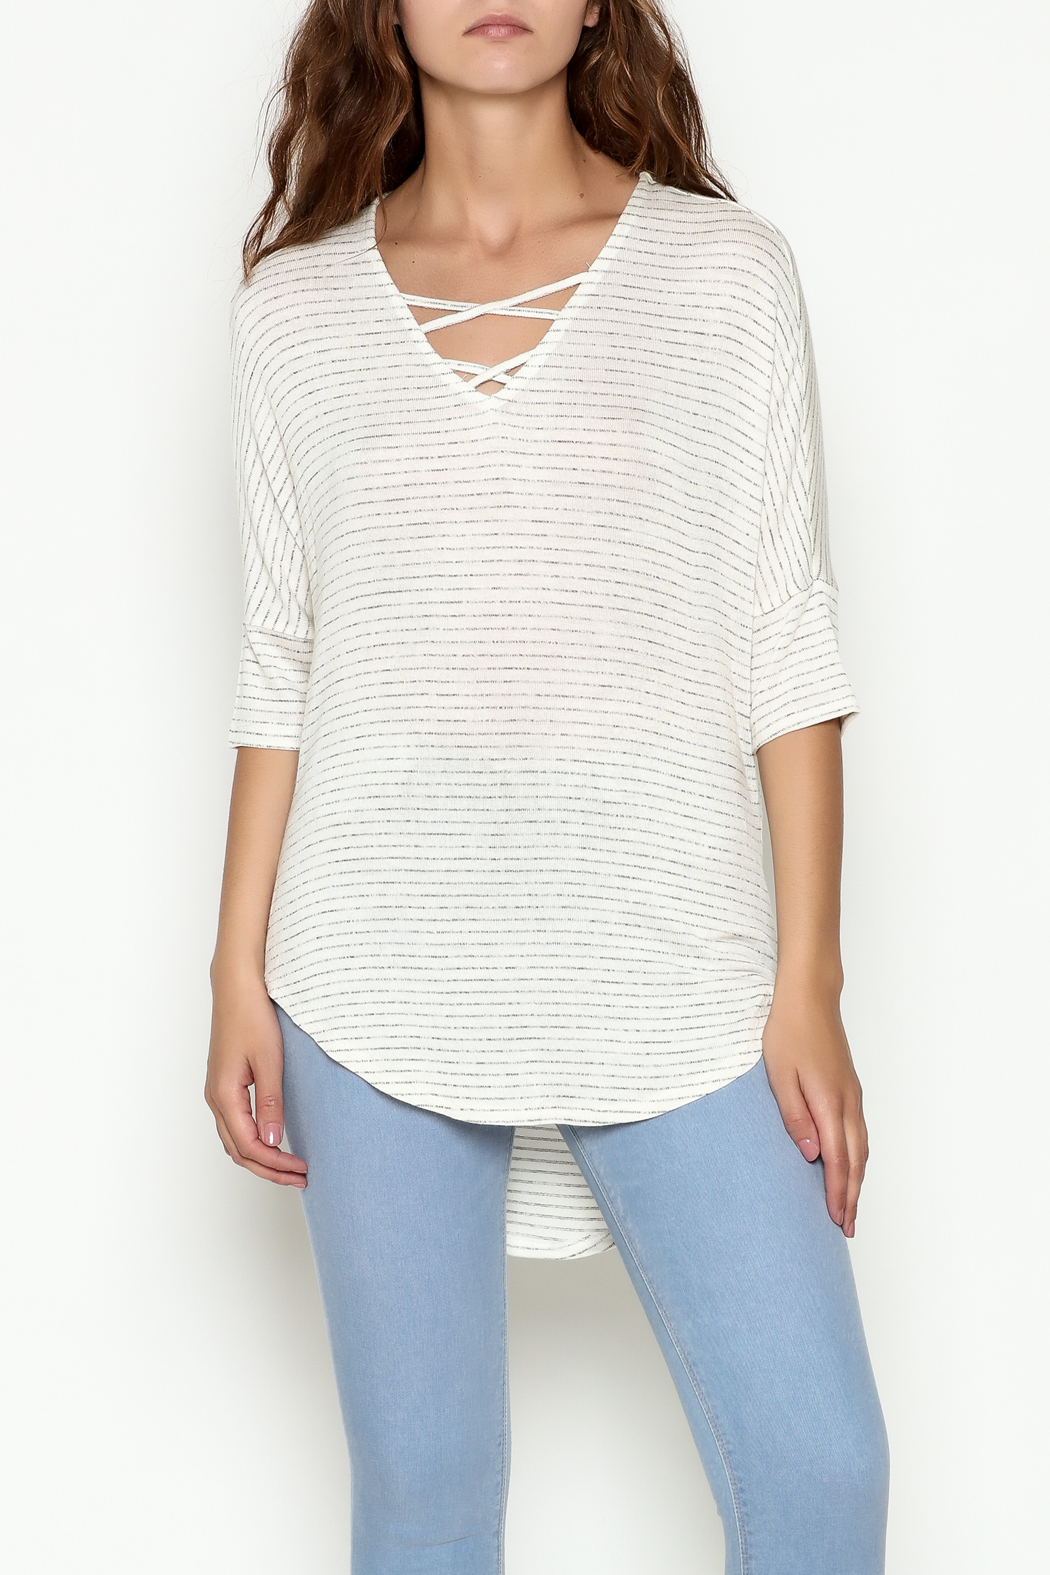 Olive & Oak Ivory Stripe Top - Main Image